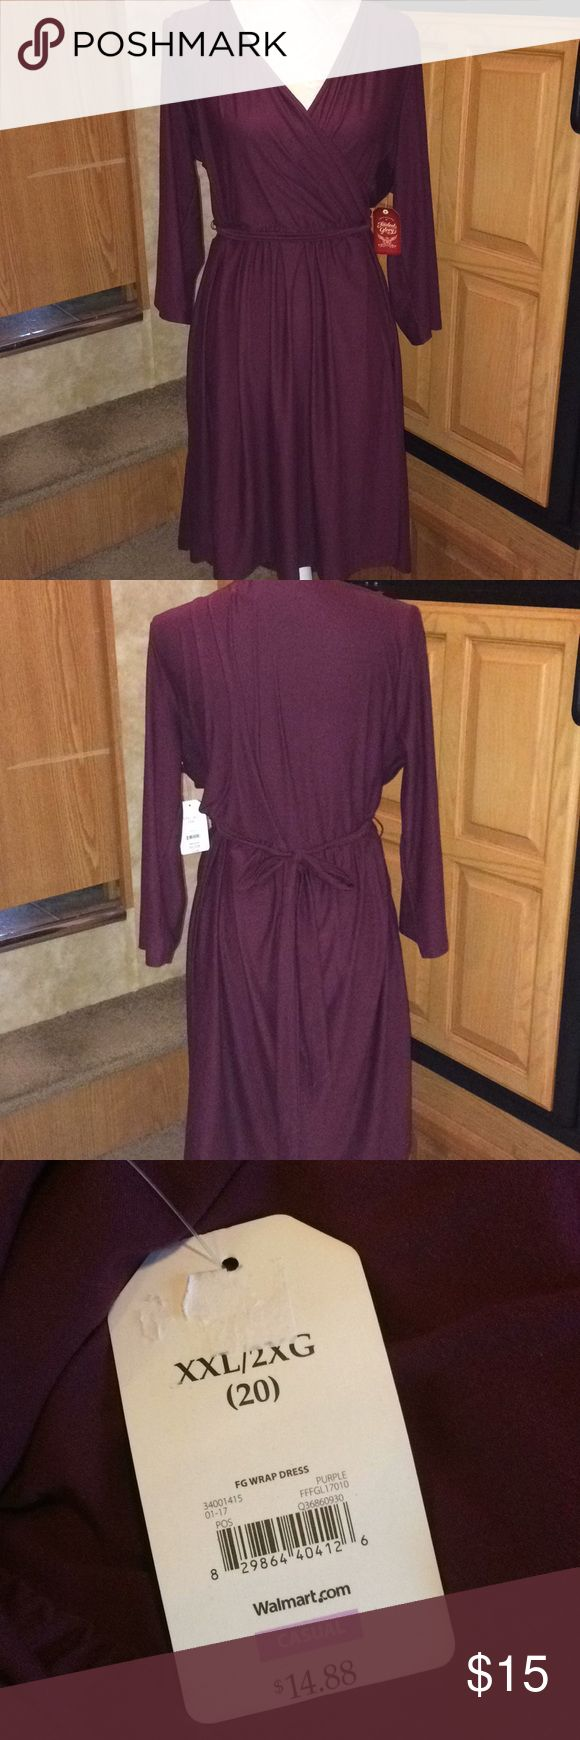 """Faded Glory Purple Faux Wrap Dress XXL NWT Length measures approximately 41"""" from shoulder to hem. I can provide additional photos or measurements upon request. I do not trade or hold items. Faded Glory Dresses"""